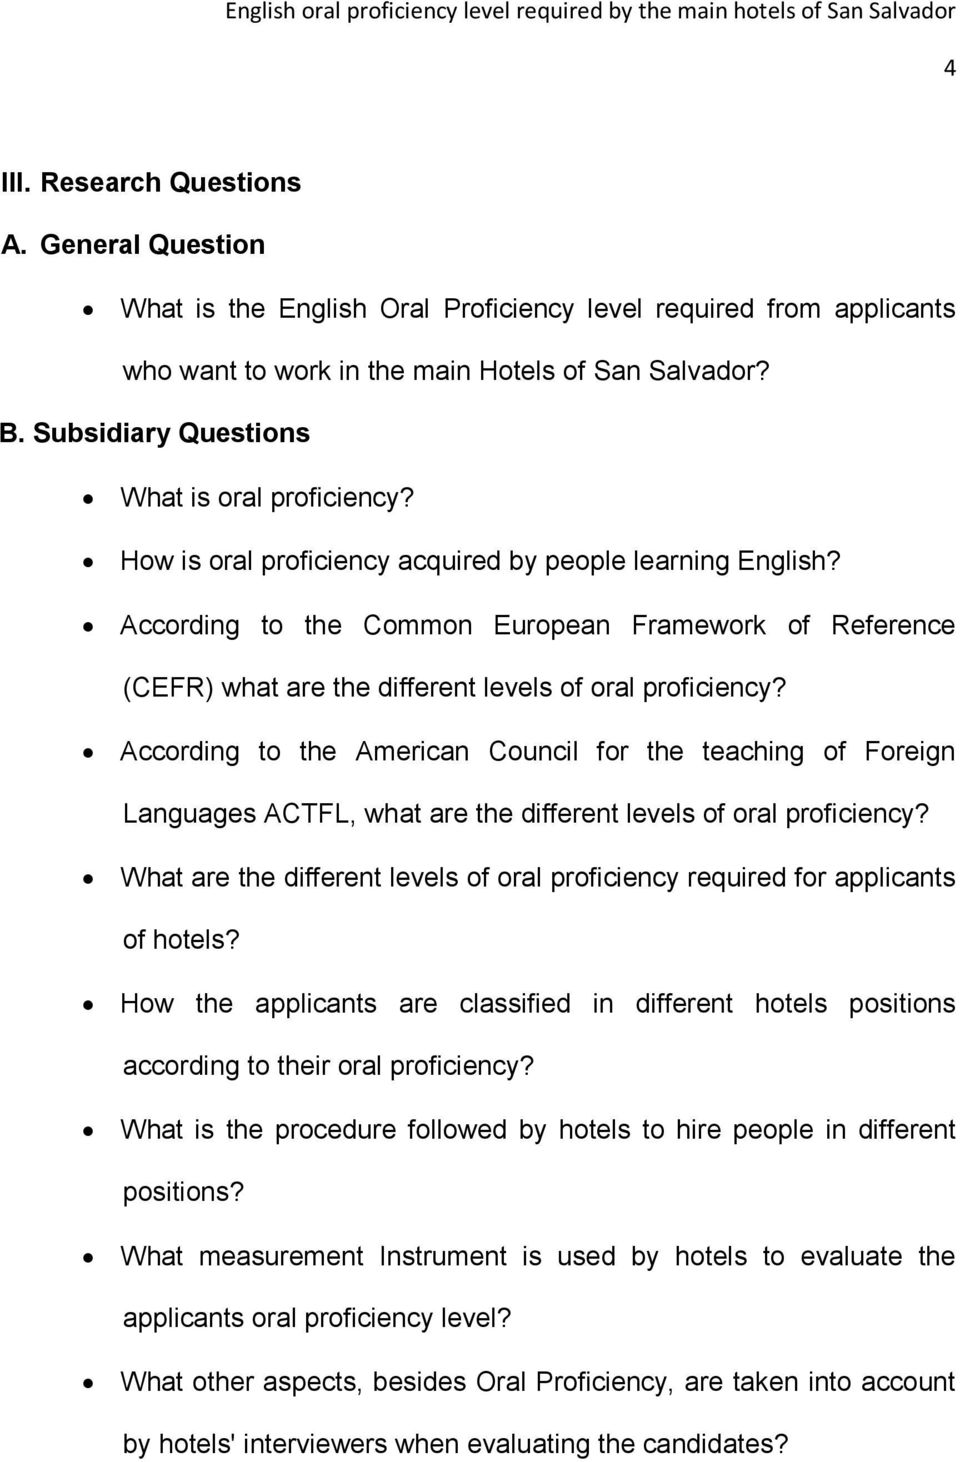 According to the Common European Framework of Reference (CEFR) what are the different levels of oral proficiency?